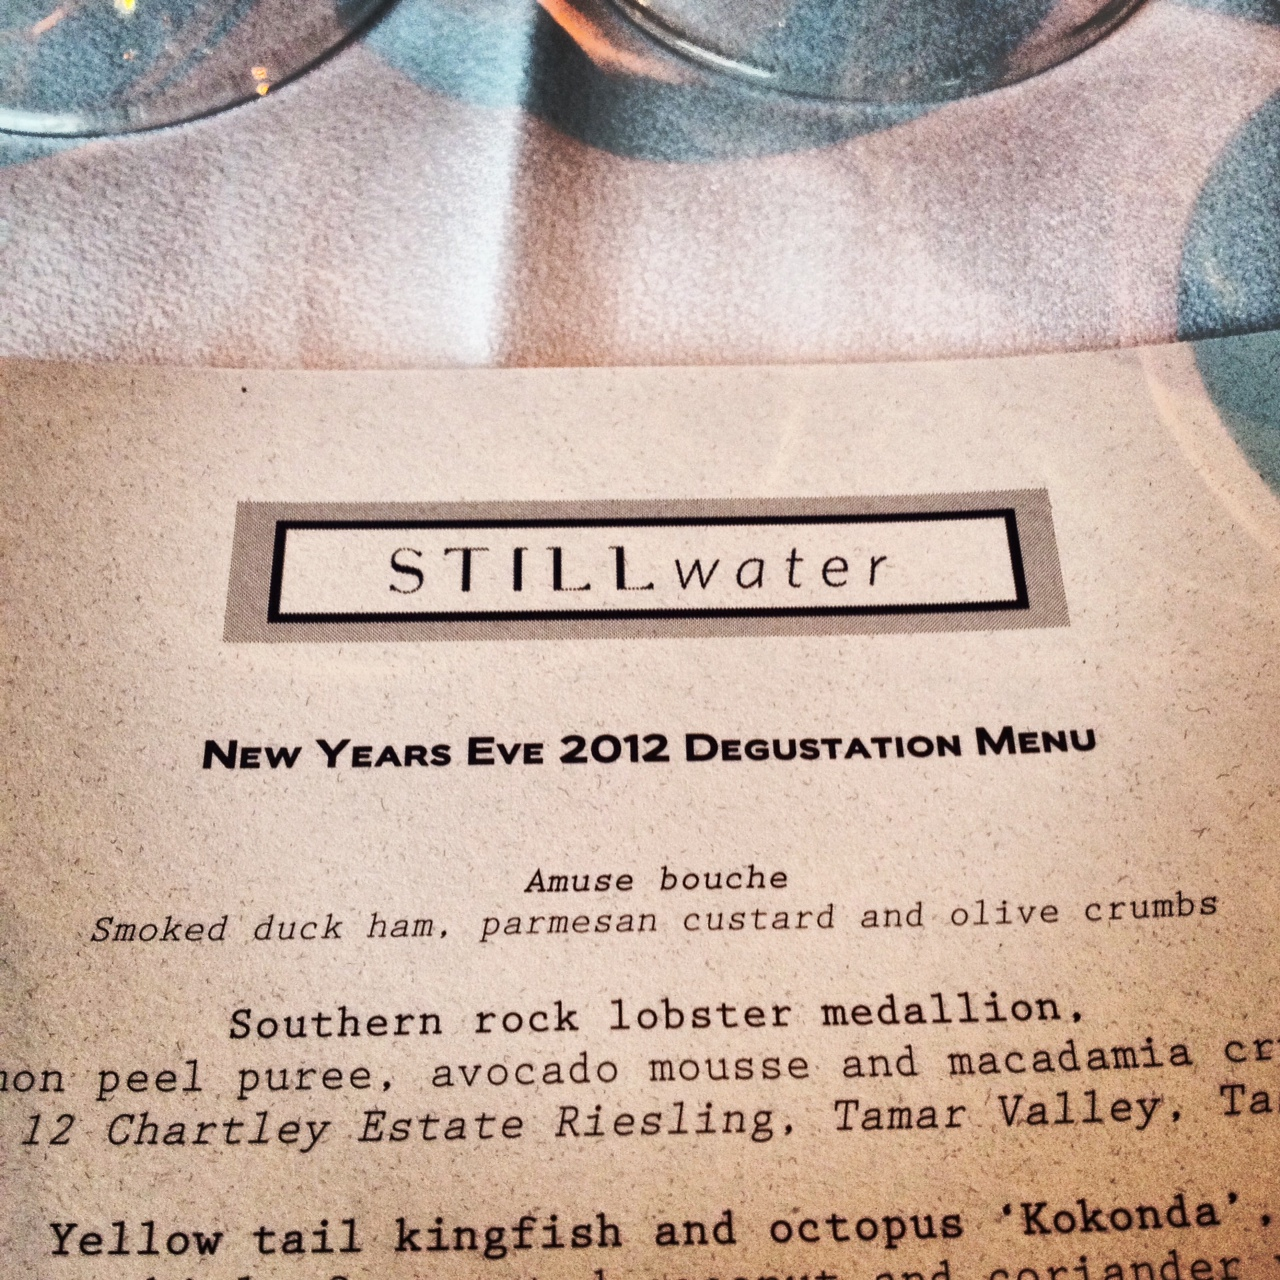 Stillwater - New Years Eve Menu